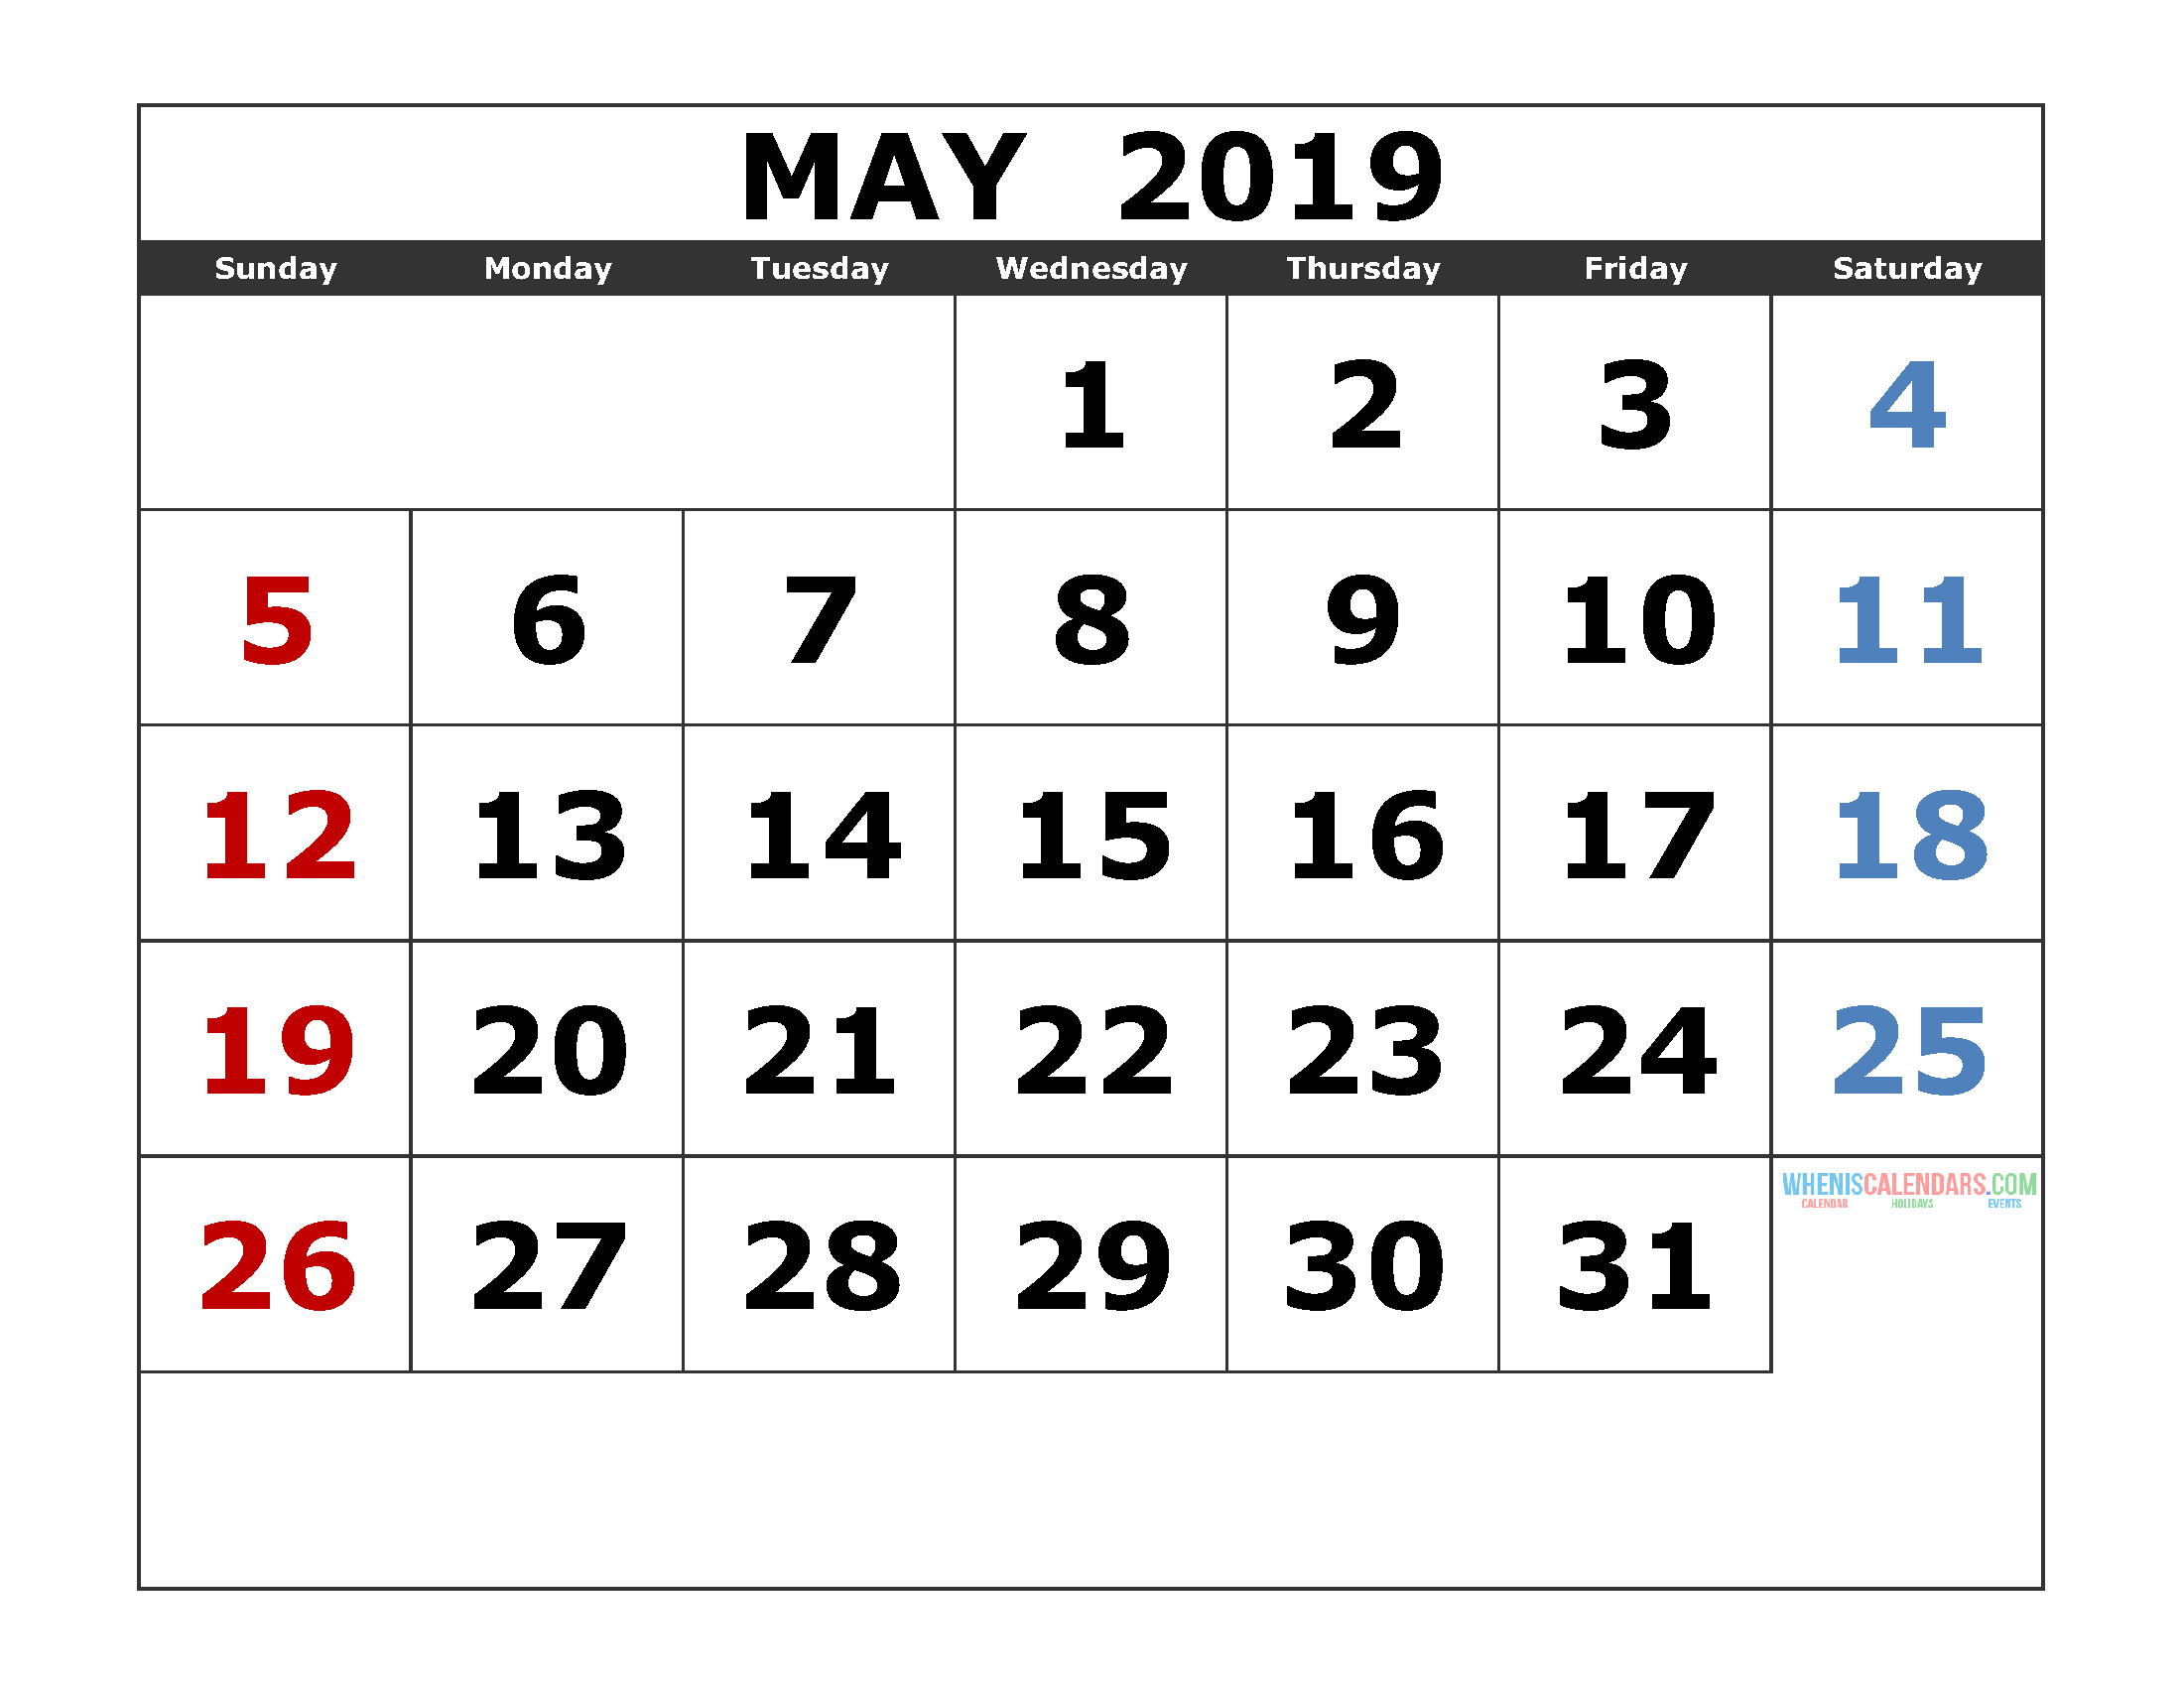 May 2019 Printable Calendar Template Excel, PDF, Image